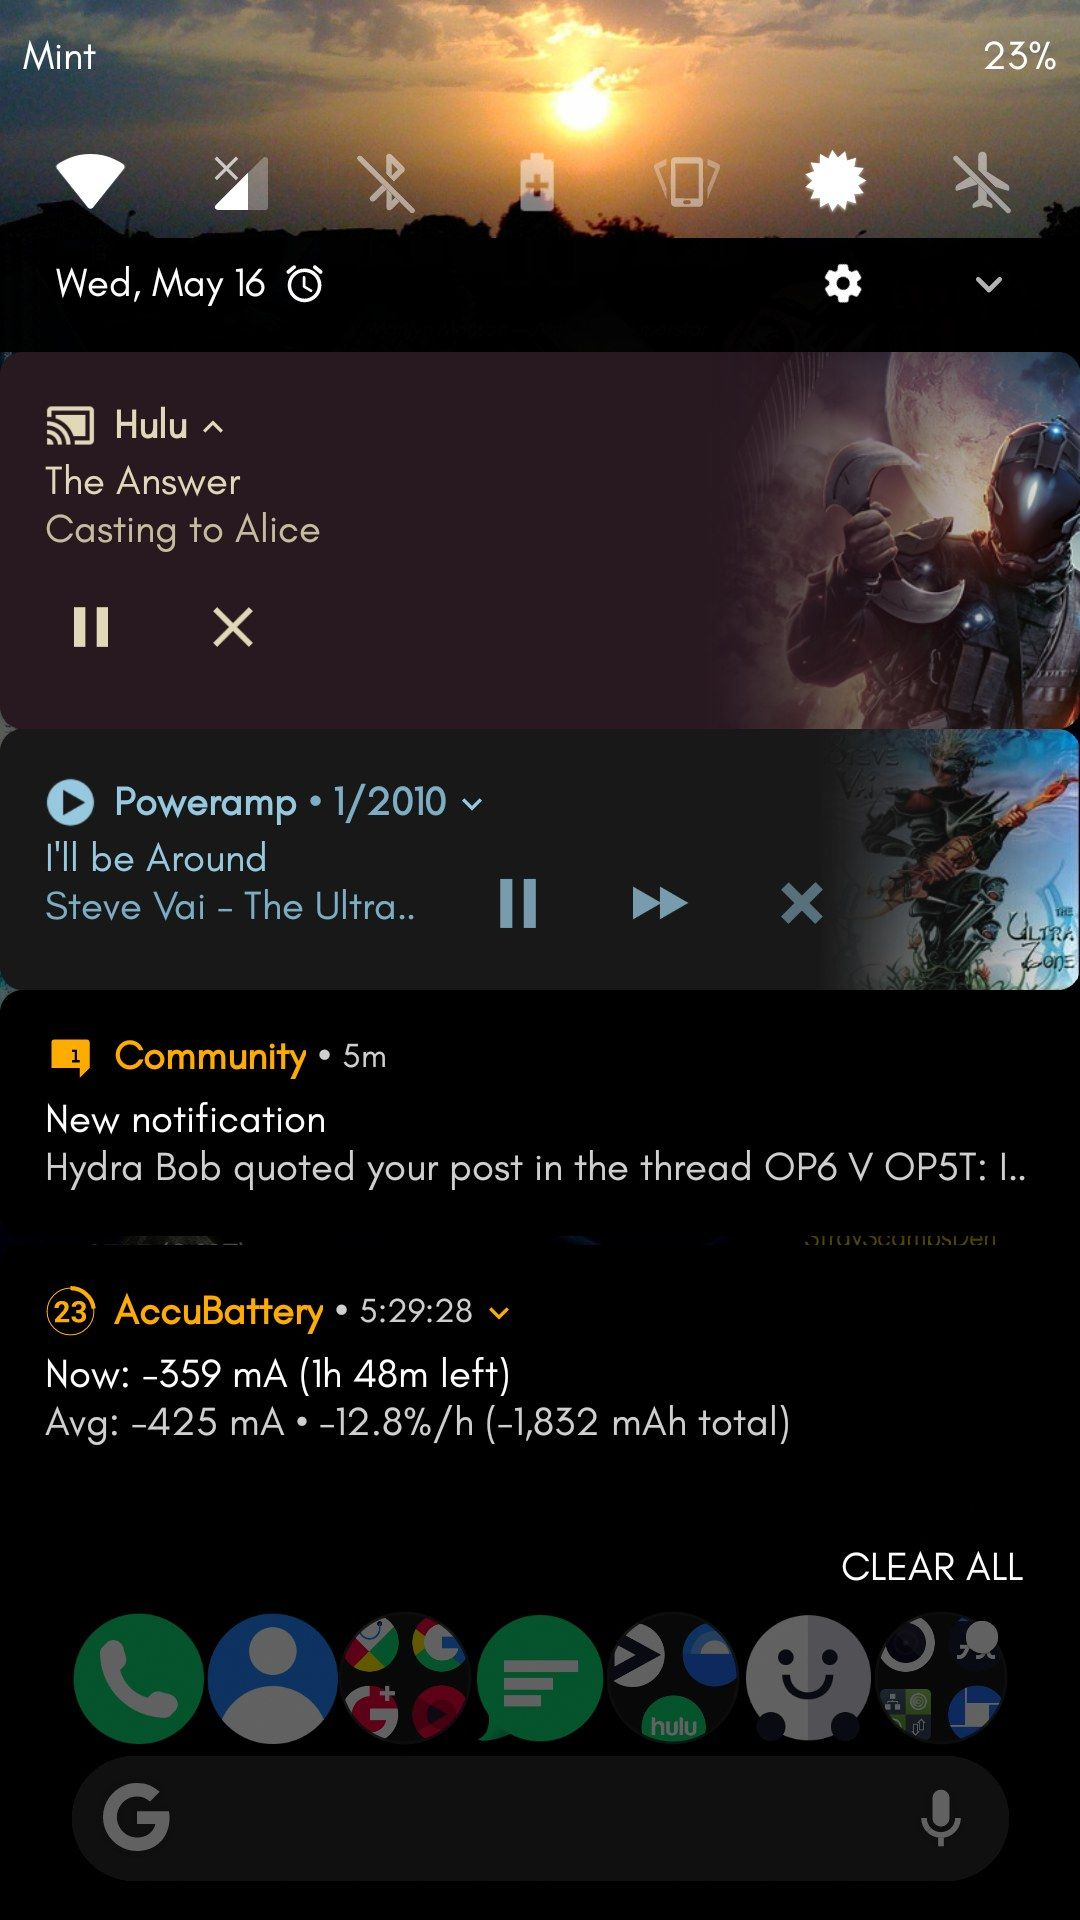 A better music player than Poweramp perhaps? - OnePlus Community